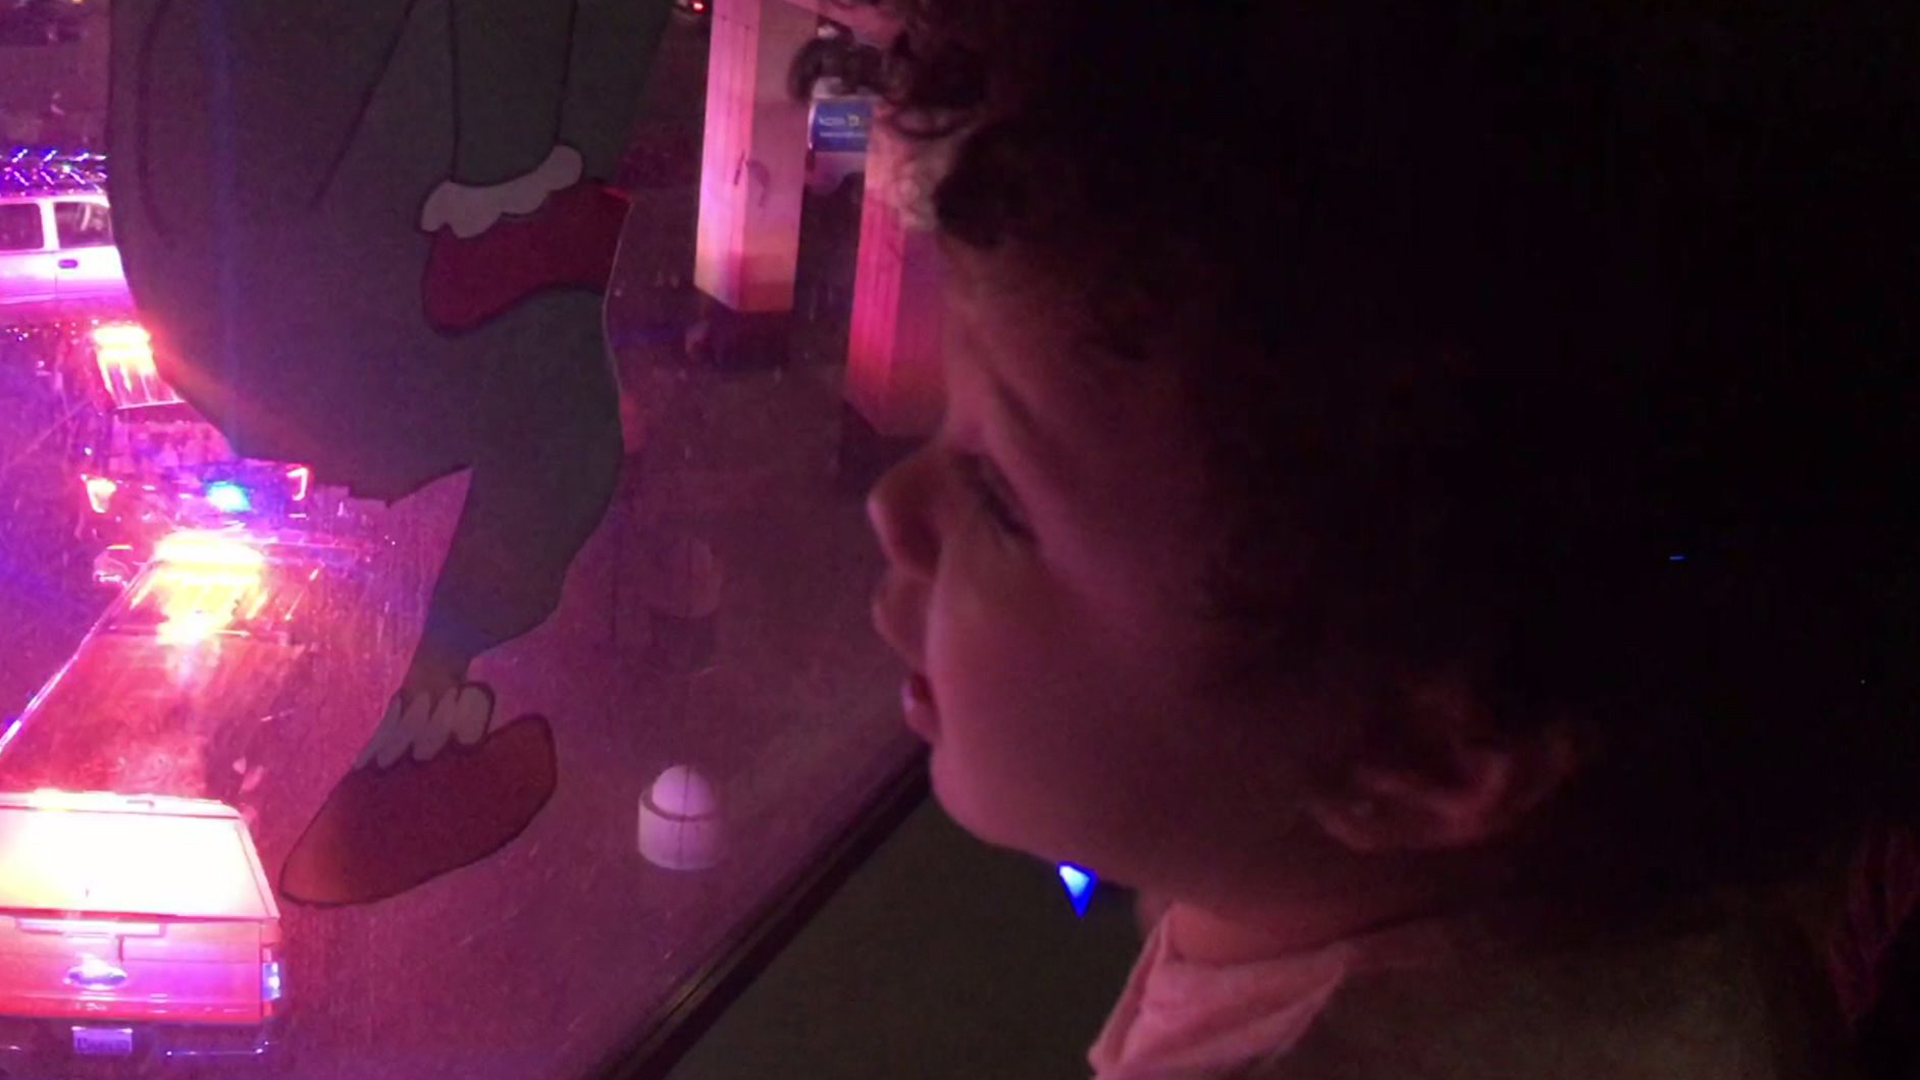 A patient at Shriners Hospitals for Children in Sacramento watches a light show produced by local police and firefighters on Dec. 17, 2019. (Credit: KTXL)